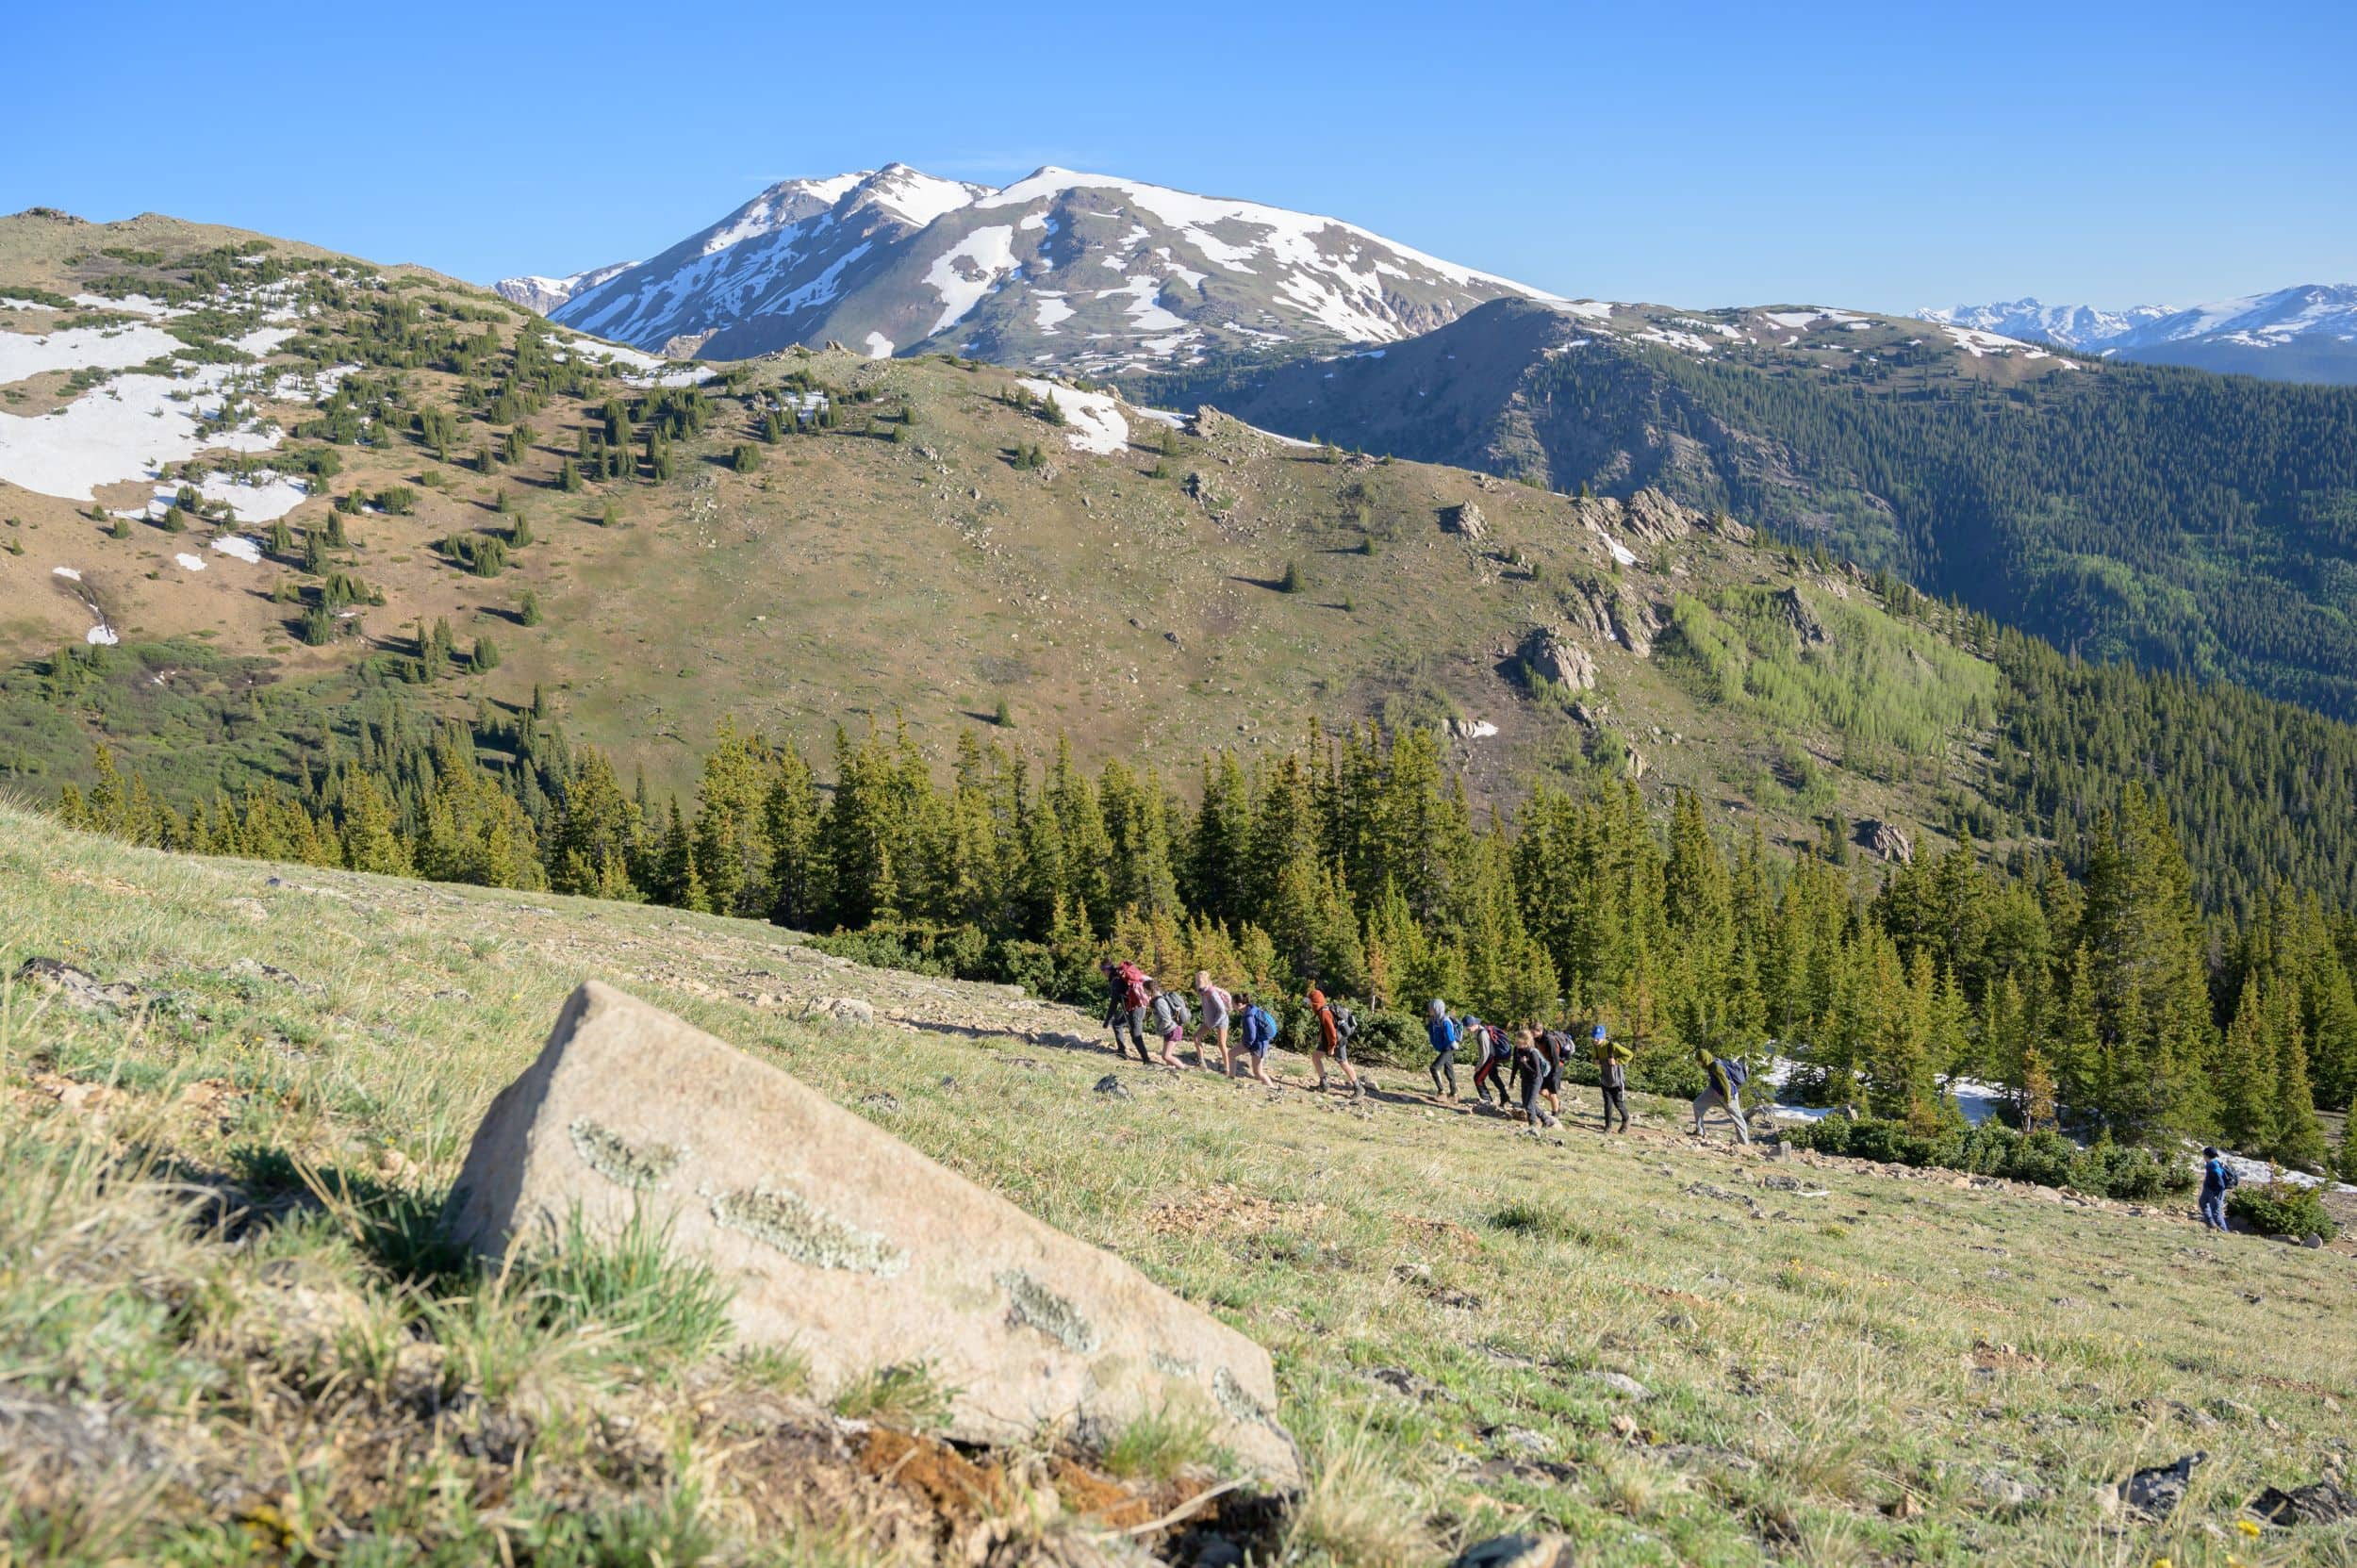 Beautiful mountain view for the campers hiking on this teen summer adventure camp